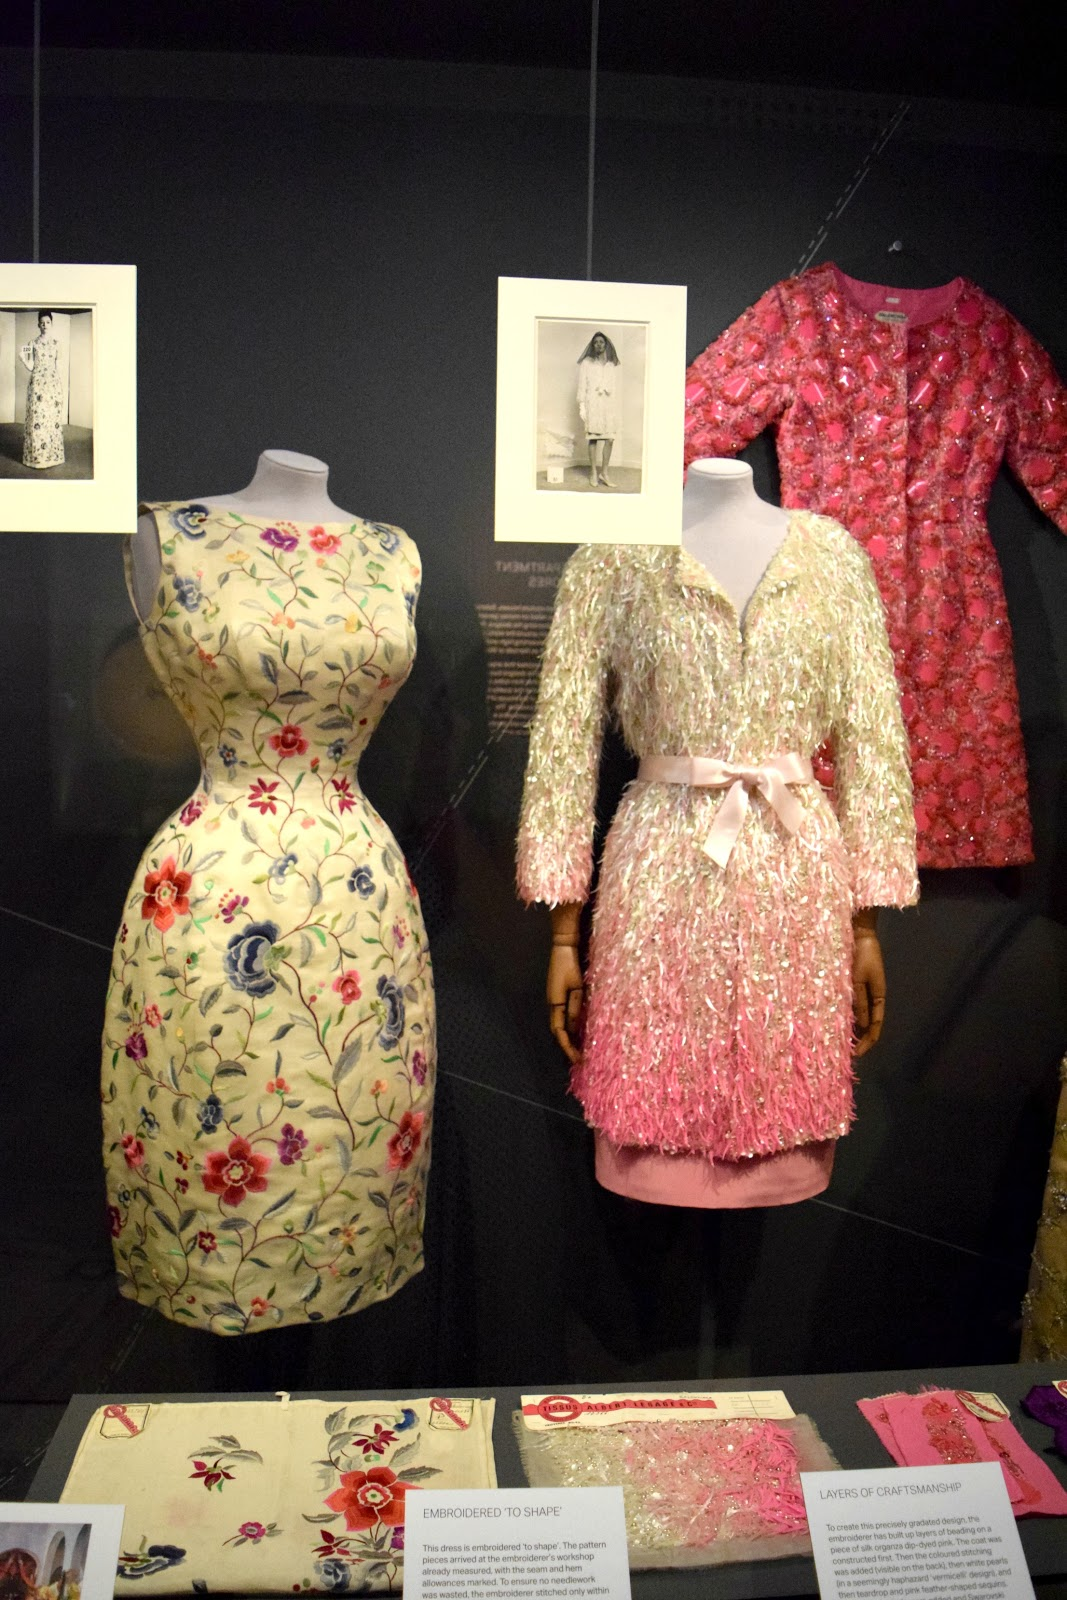 balenciaga designs displayed at fashion exhibition london